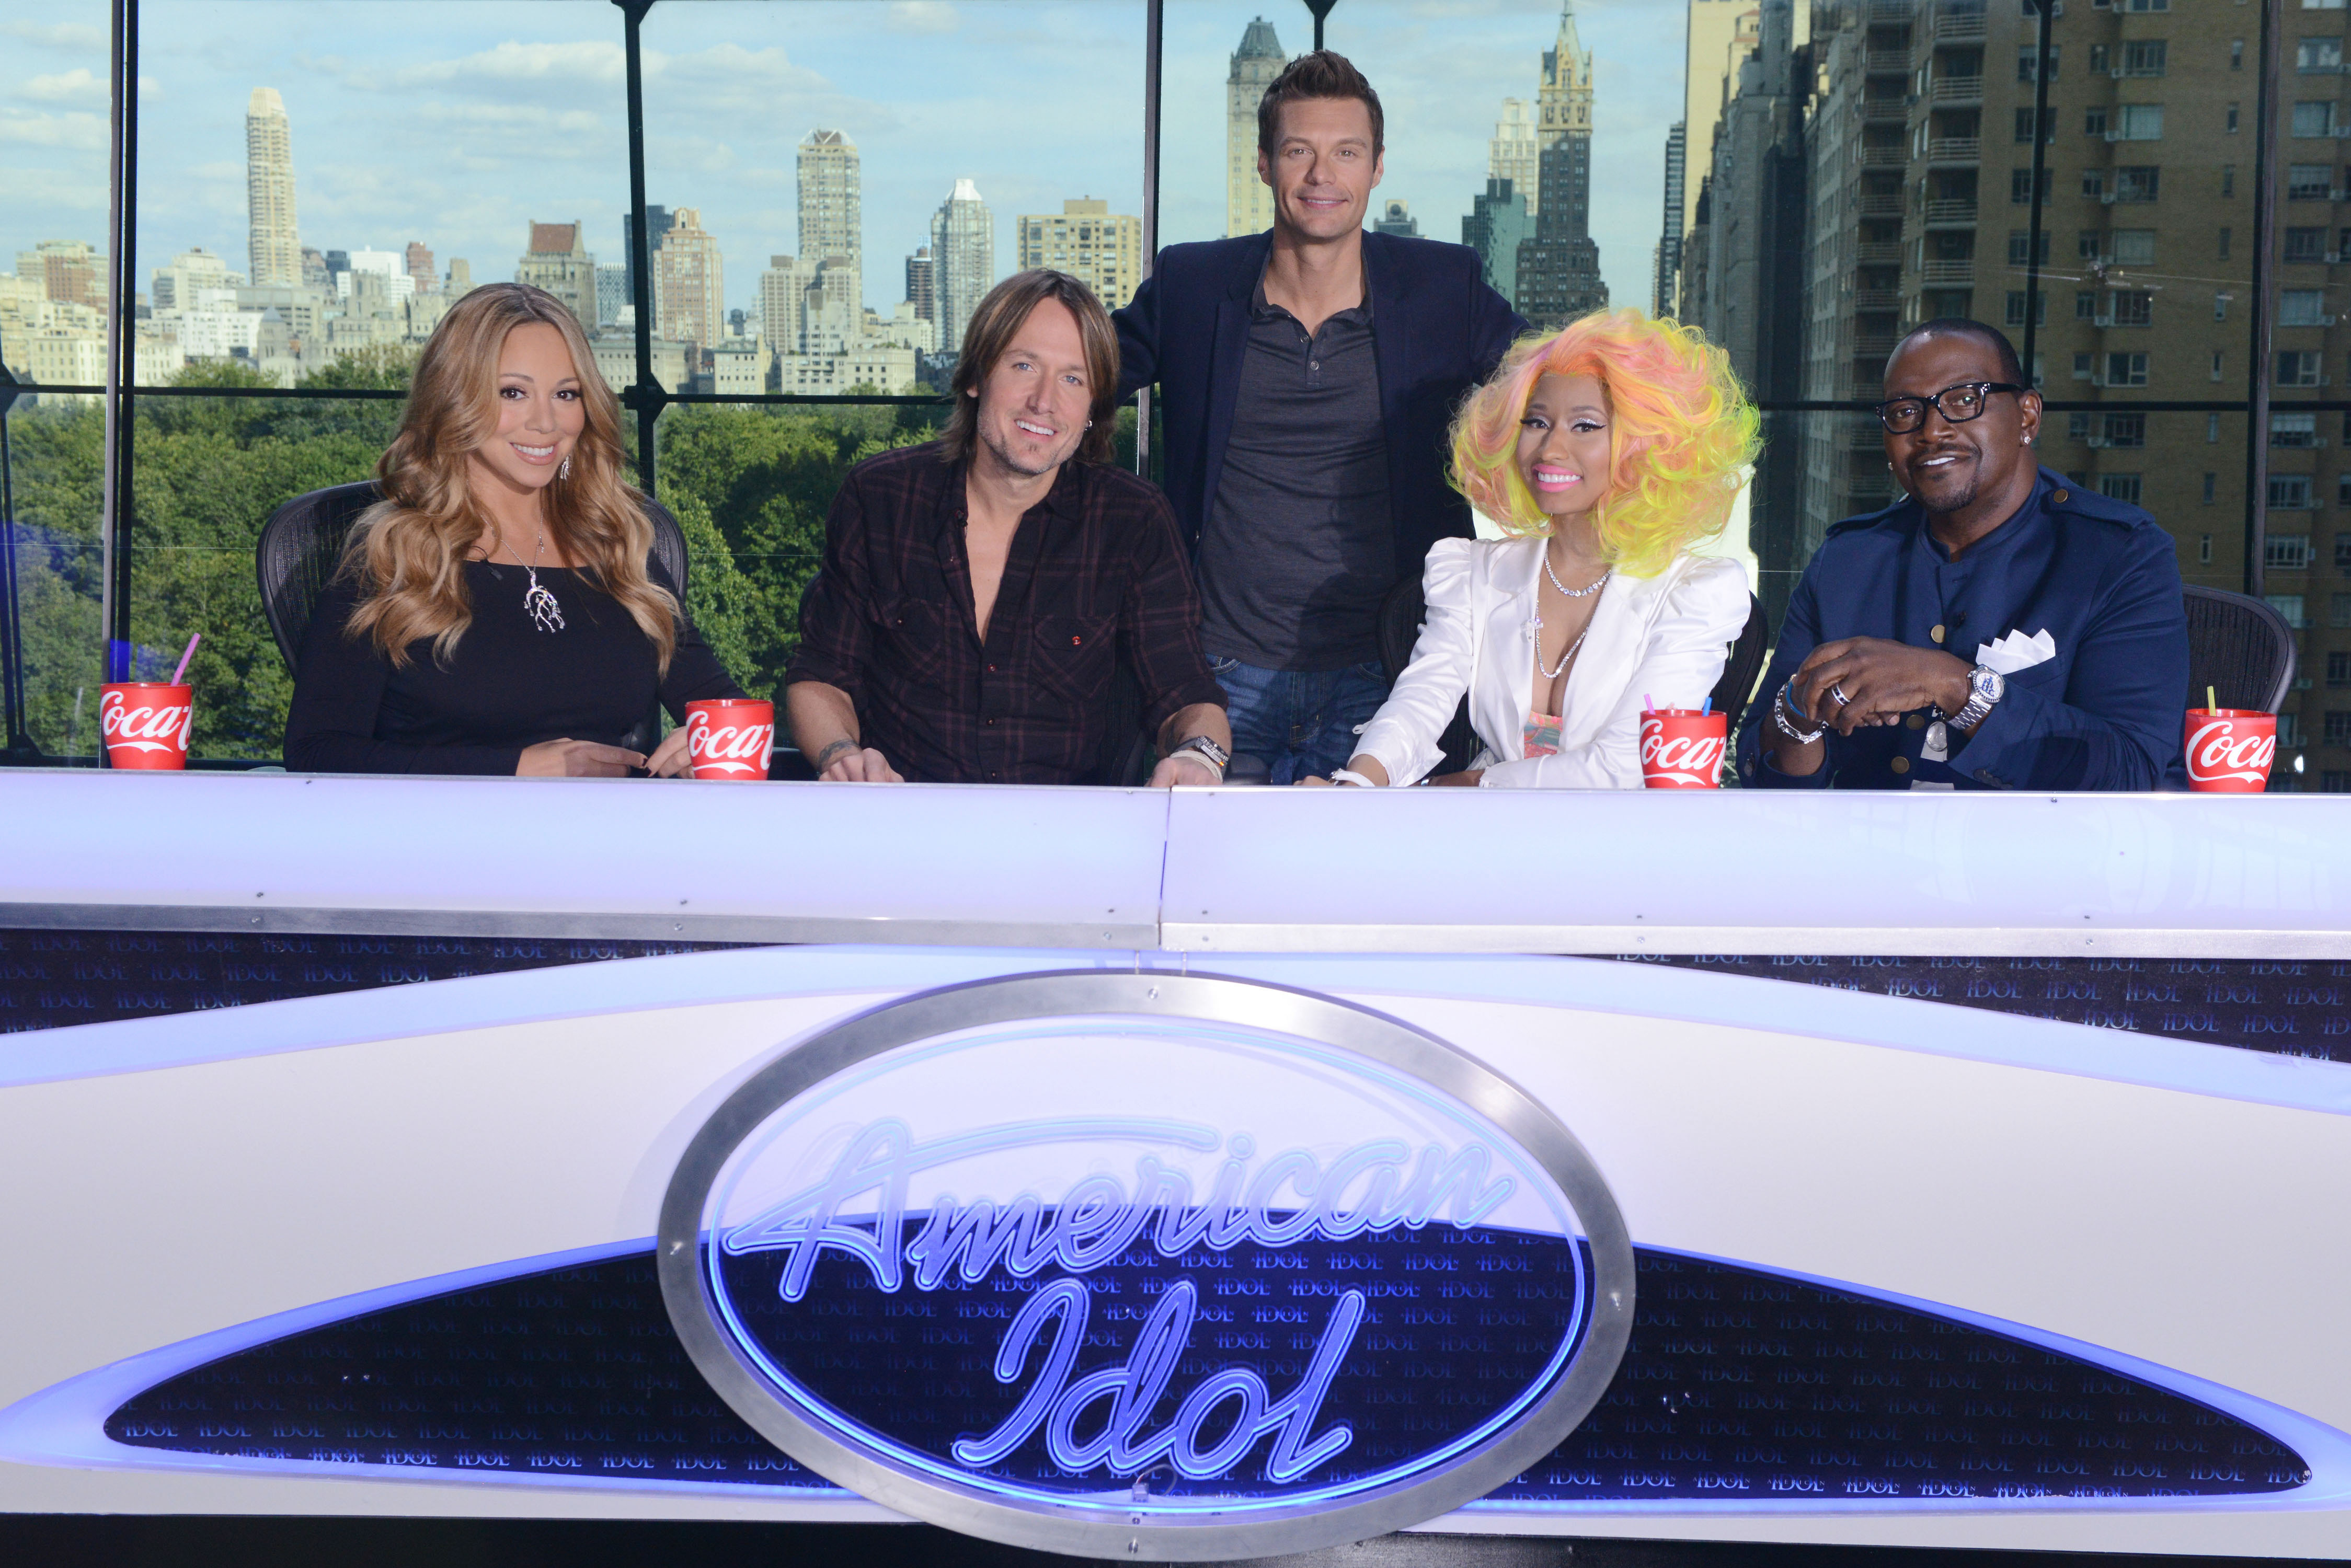 TV networks in a bidding war over 'American Idol'